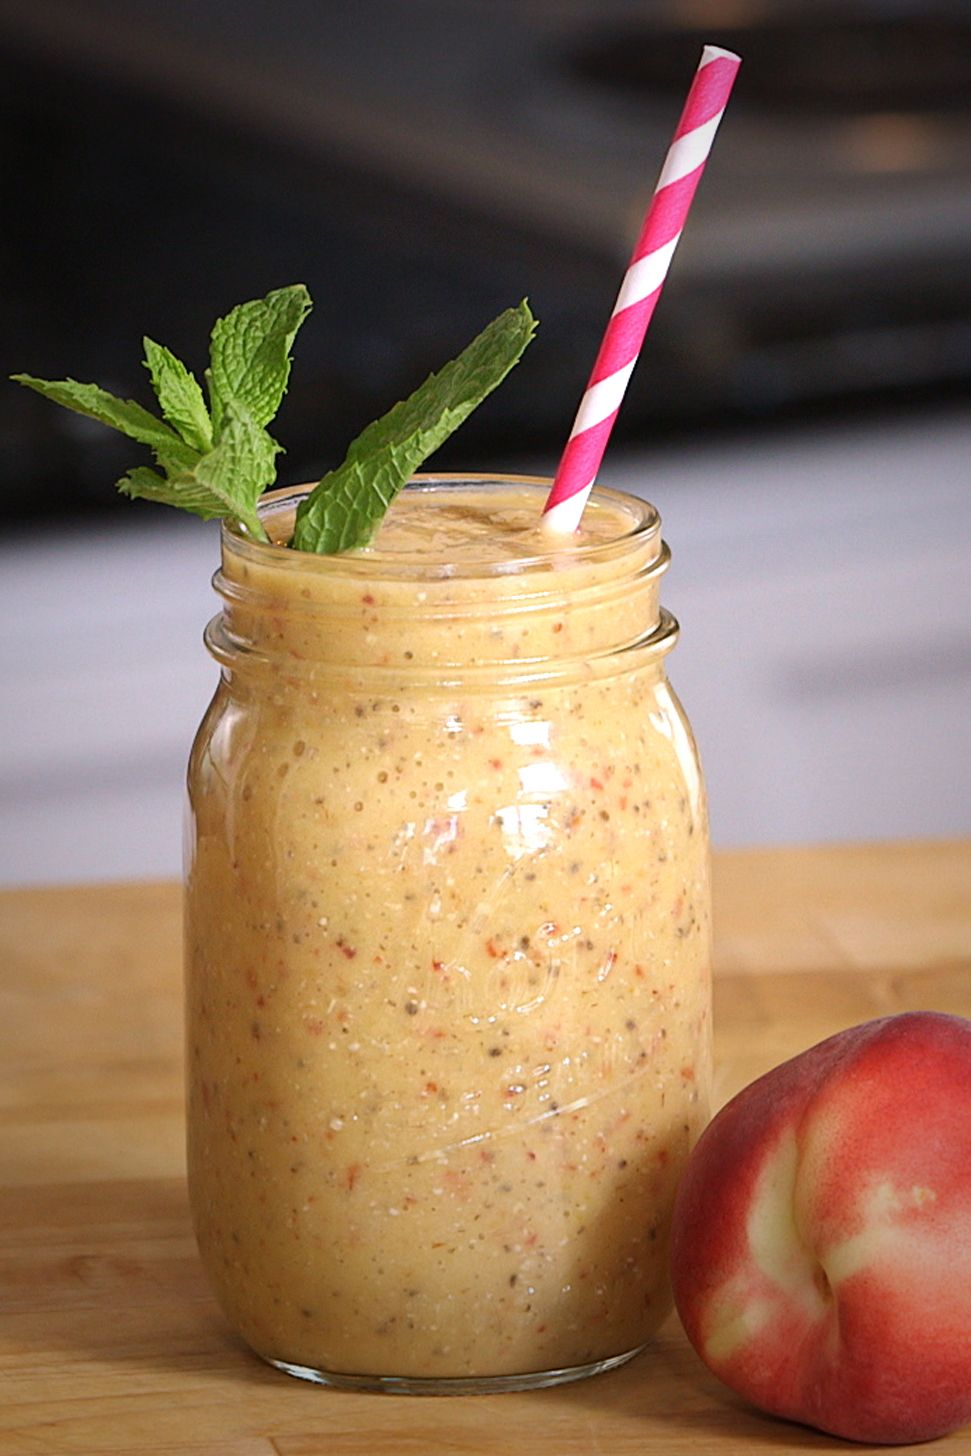 A Vegan Peaches And Cream Smoothie Will Quench Your Ice Cream Cravings Recipe Vegan Peach Vegan Smoothies Healthy Smoothies